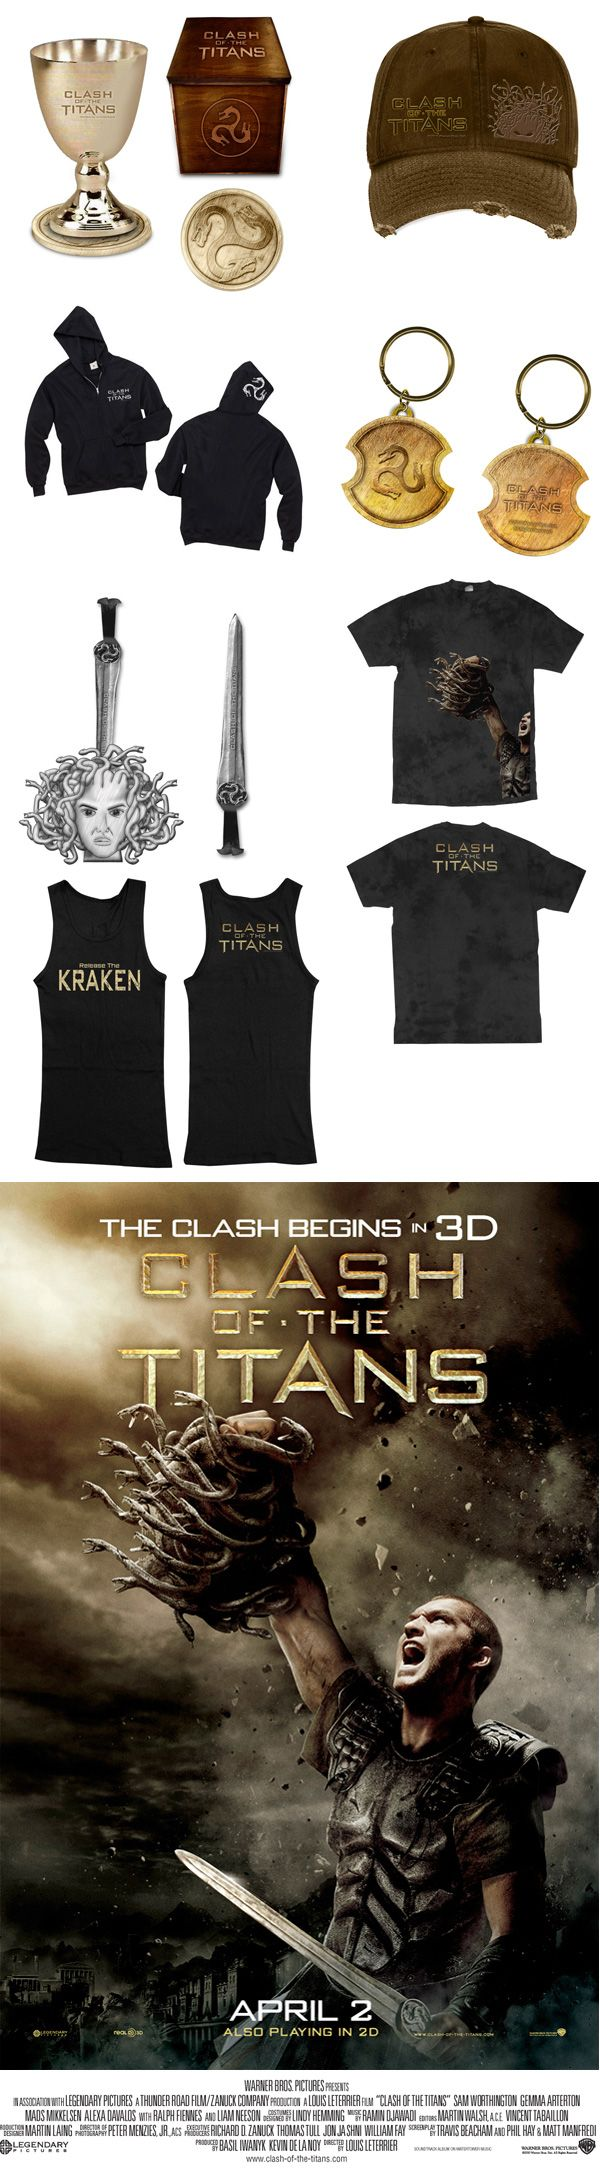 Clash of the Titans giveaway.jpg